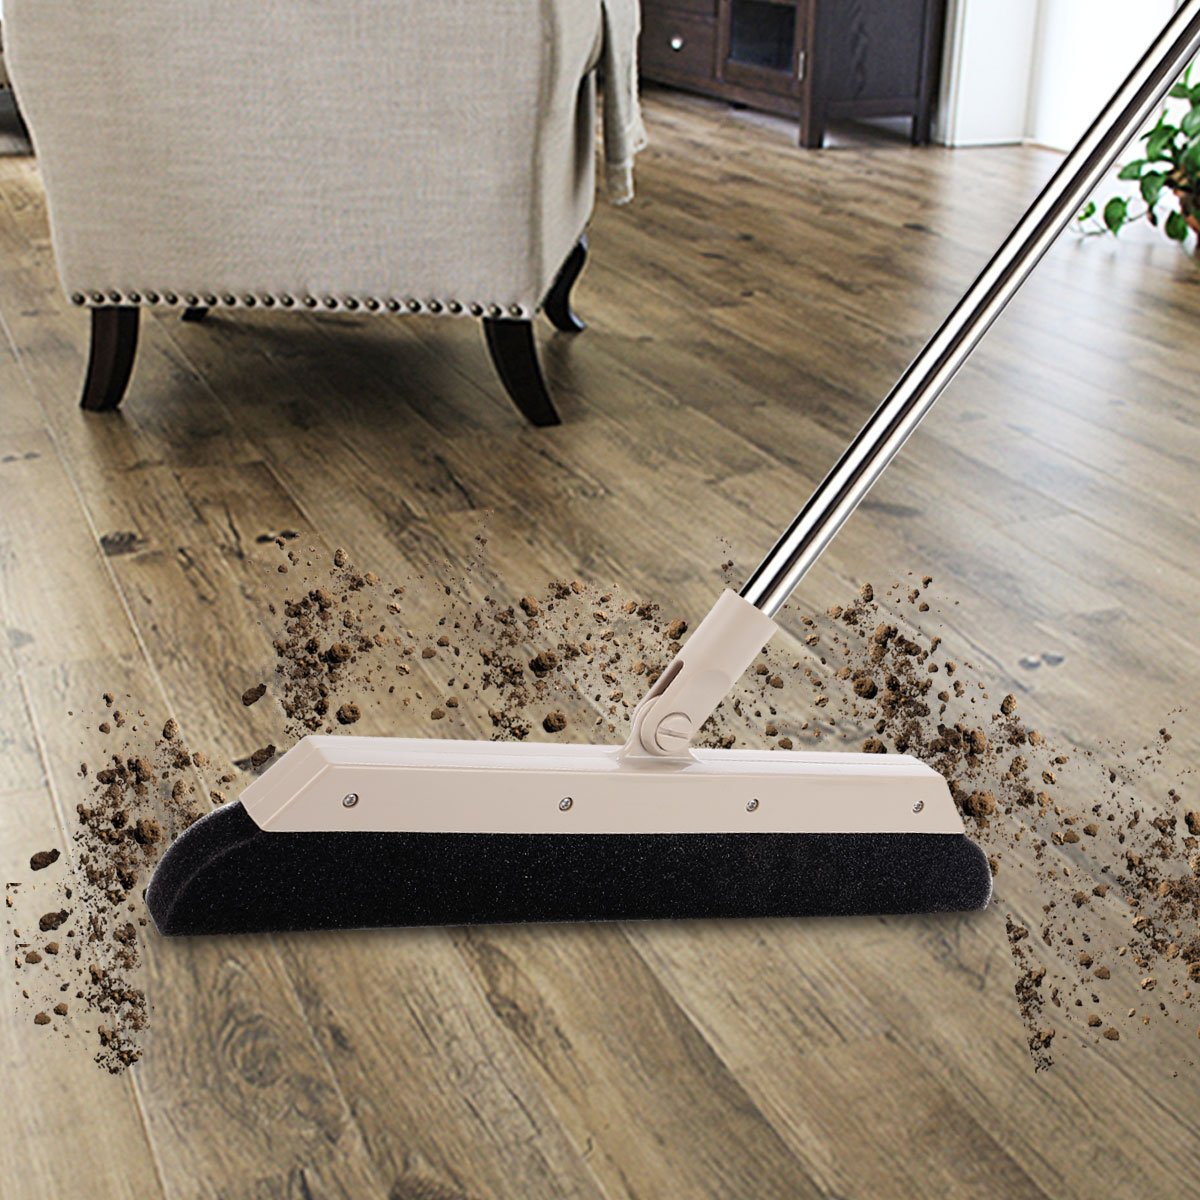 MEIBEI Sponge Broom Dust Cleaner, 37.4'' Adjustable Long Handle with 13.8'' Wide Blade, Perfect for Wood Tile Marble Carpet & Glass by MEIBEI (Image #3)